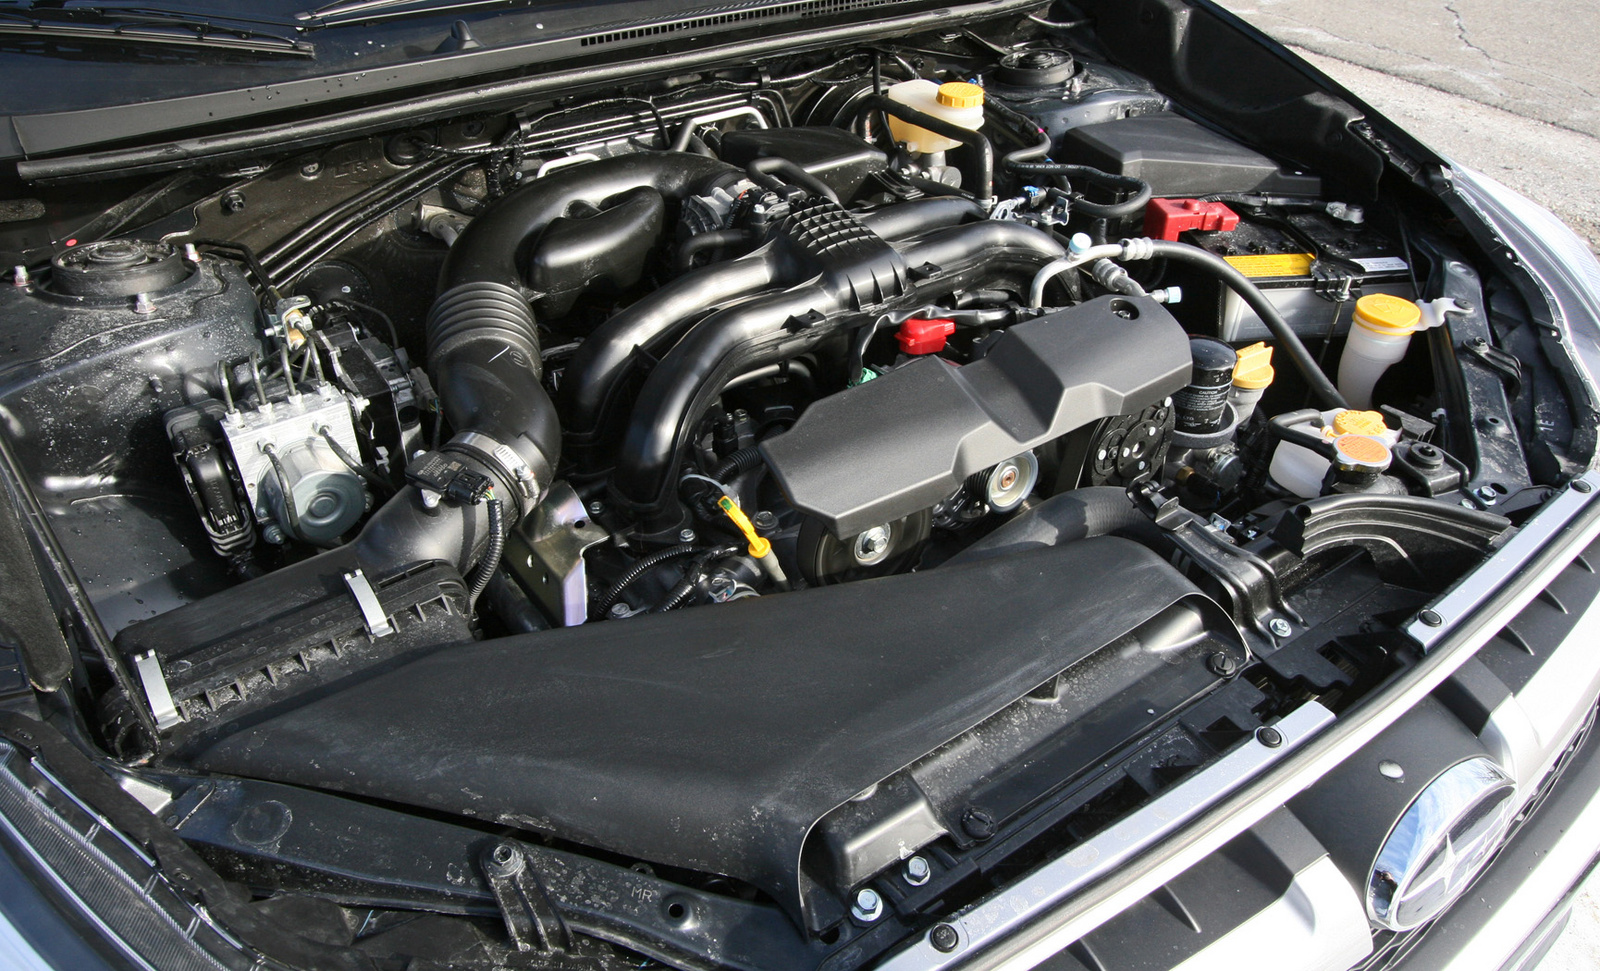 2014 Subaru Impreza engine